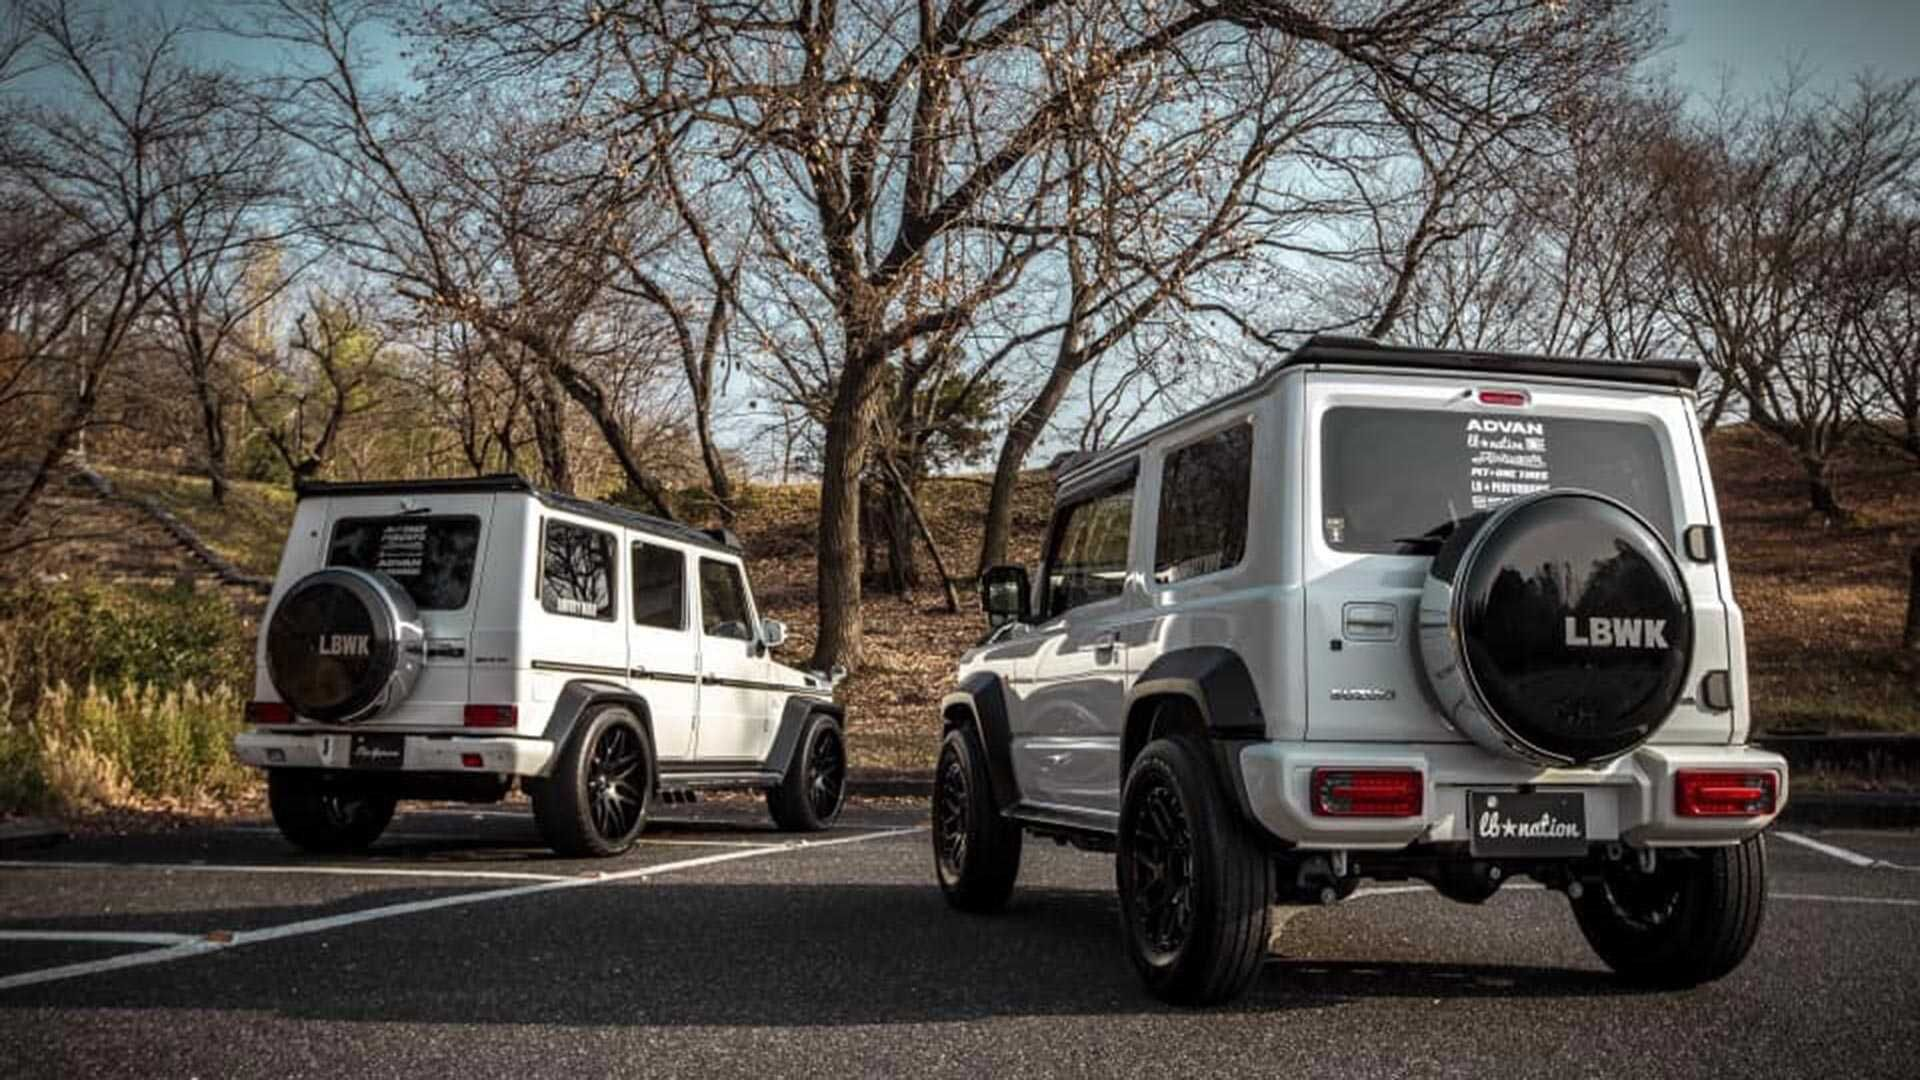 Tuned Suzuki Jimny G Class Lookalike Meets The Real Thing Mercedes Benz G